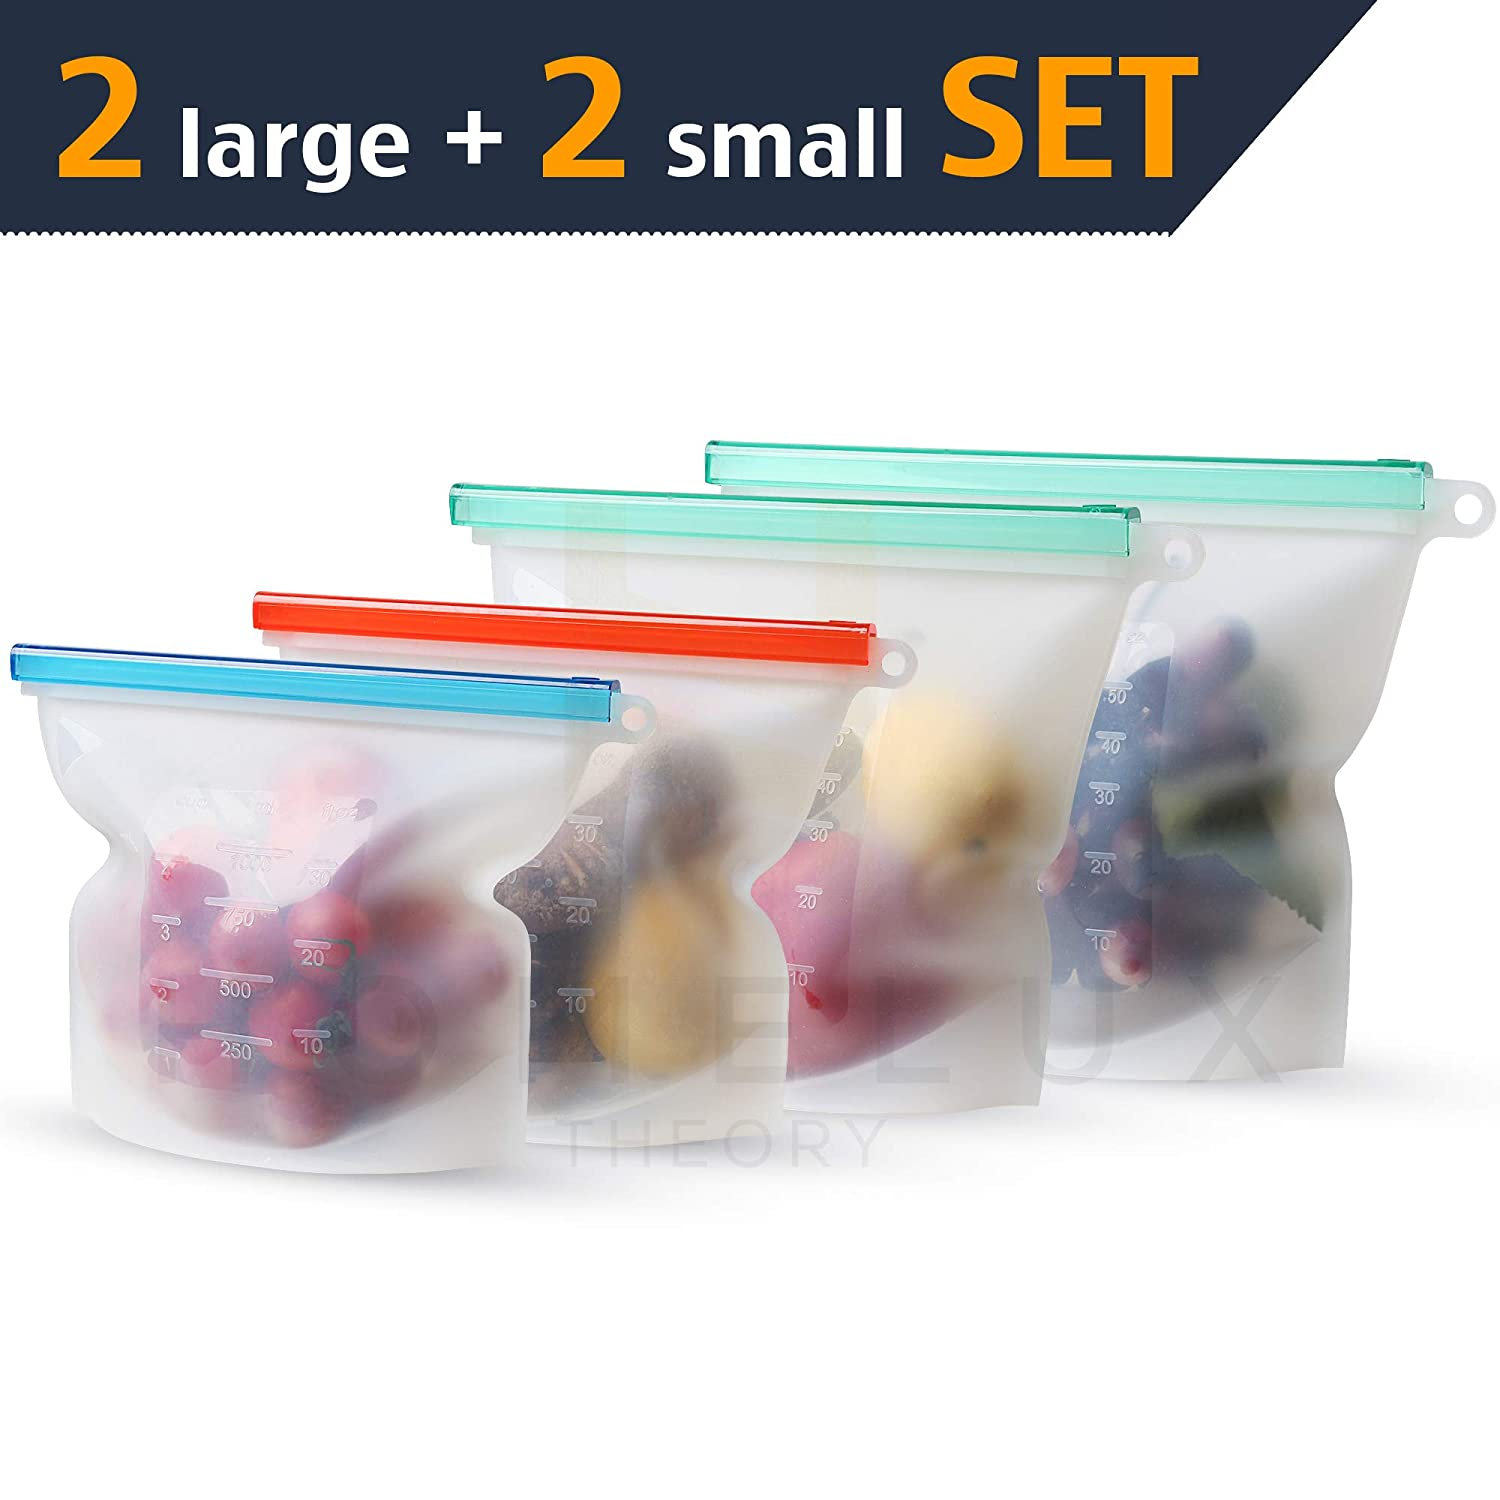 Homelux Theory Reusable Silicone Food Storage Bags | Sandwich, Sous Vide, Liquid, Snack, Lunch, Fruit, Freezer Airtight Seal | BEST for preserving and cooking | 2 Large & 2 Small (Rainbow)